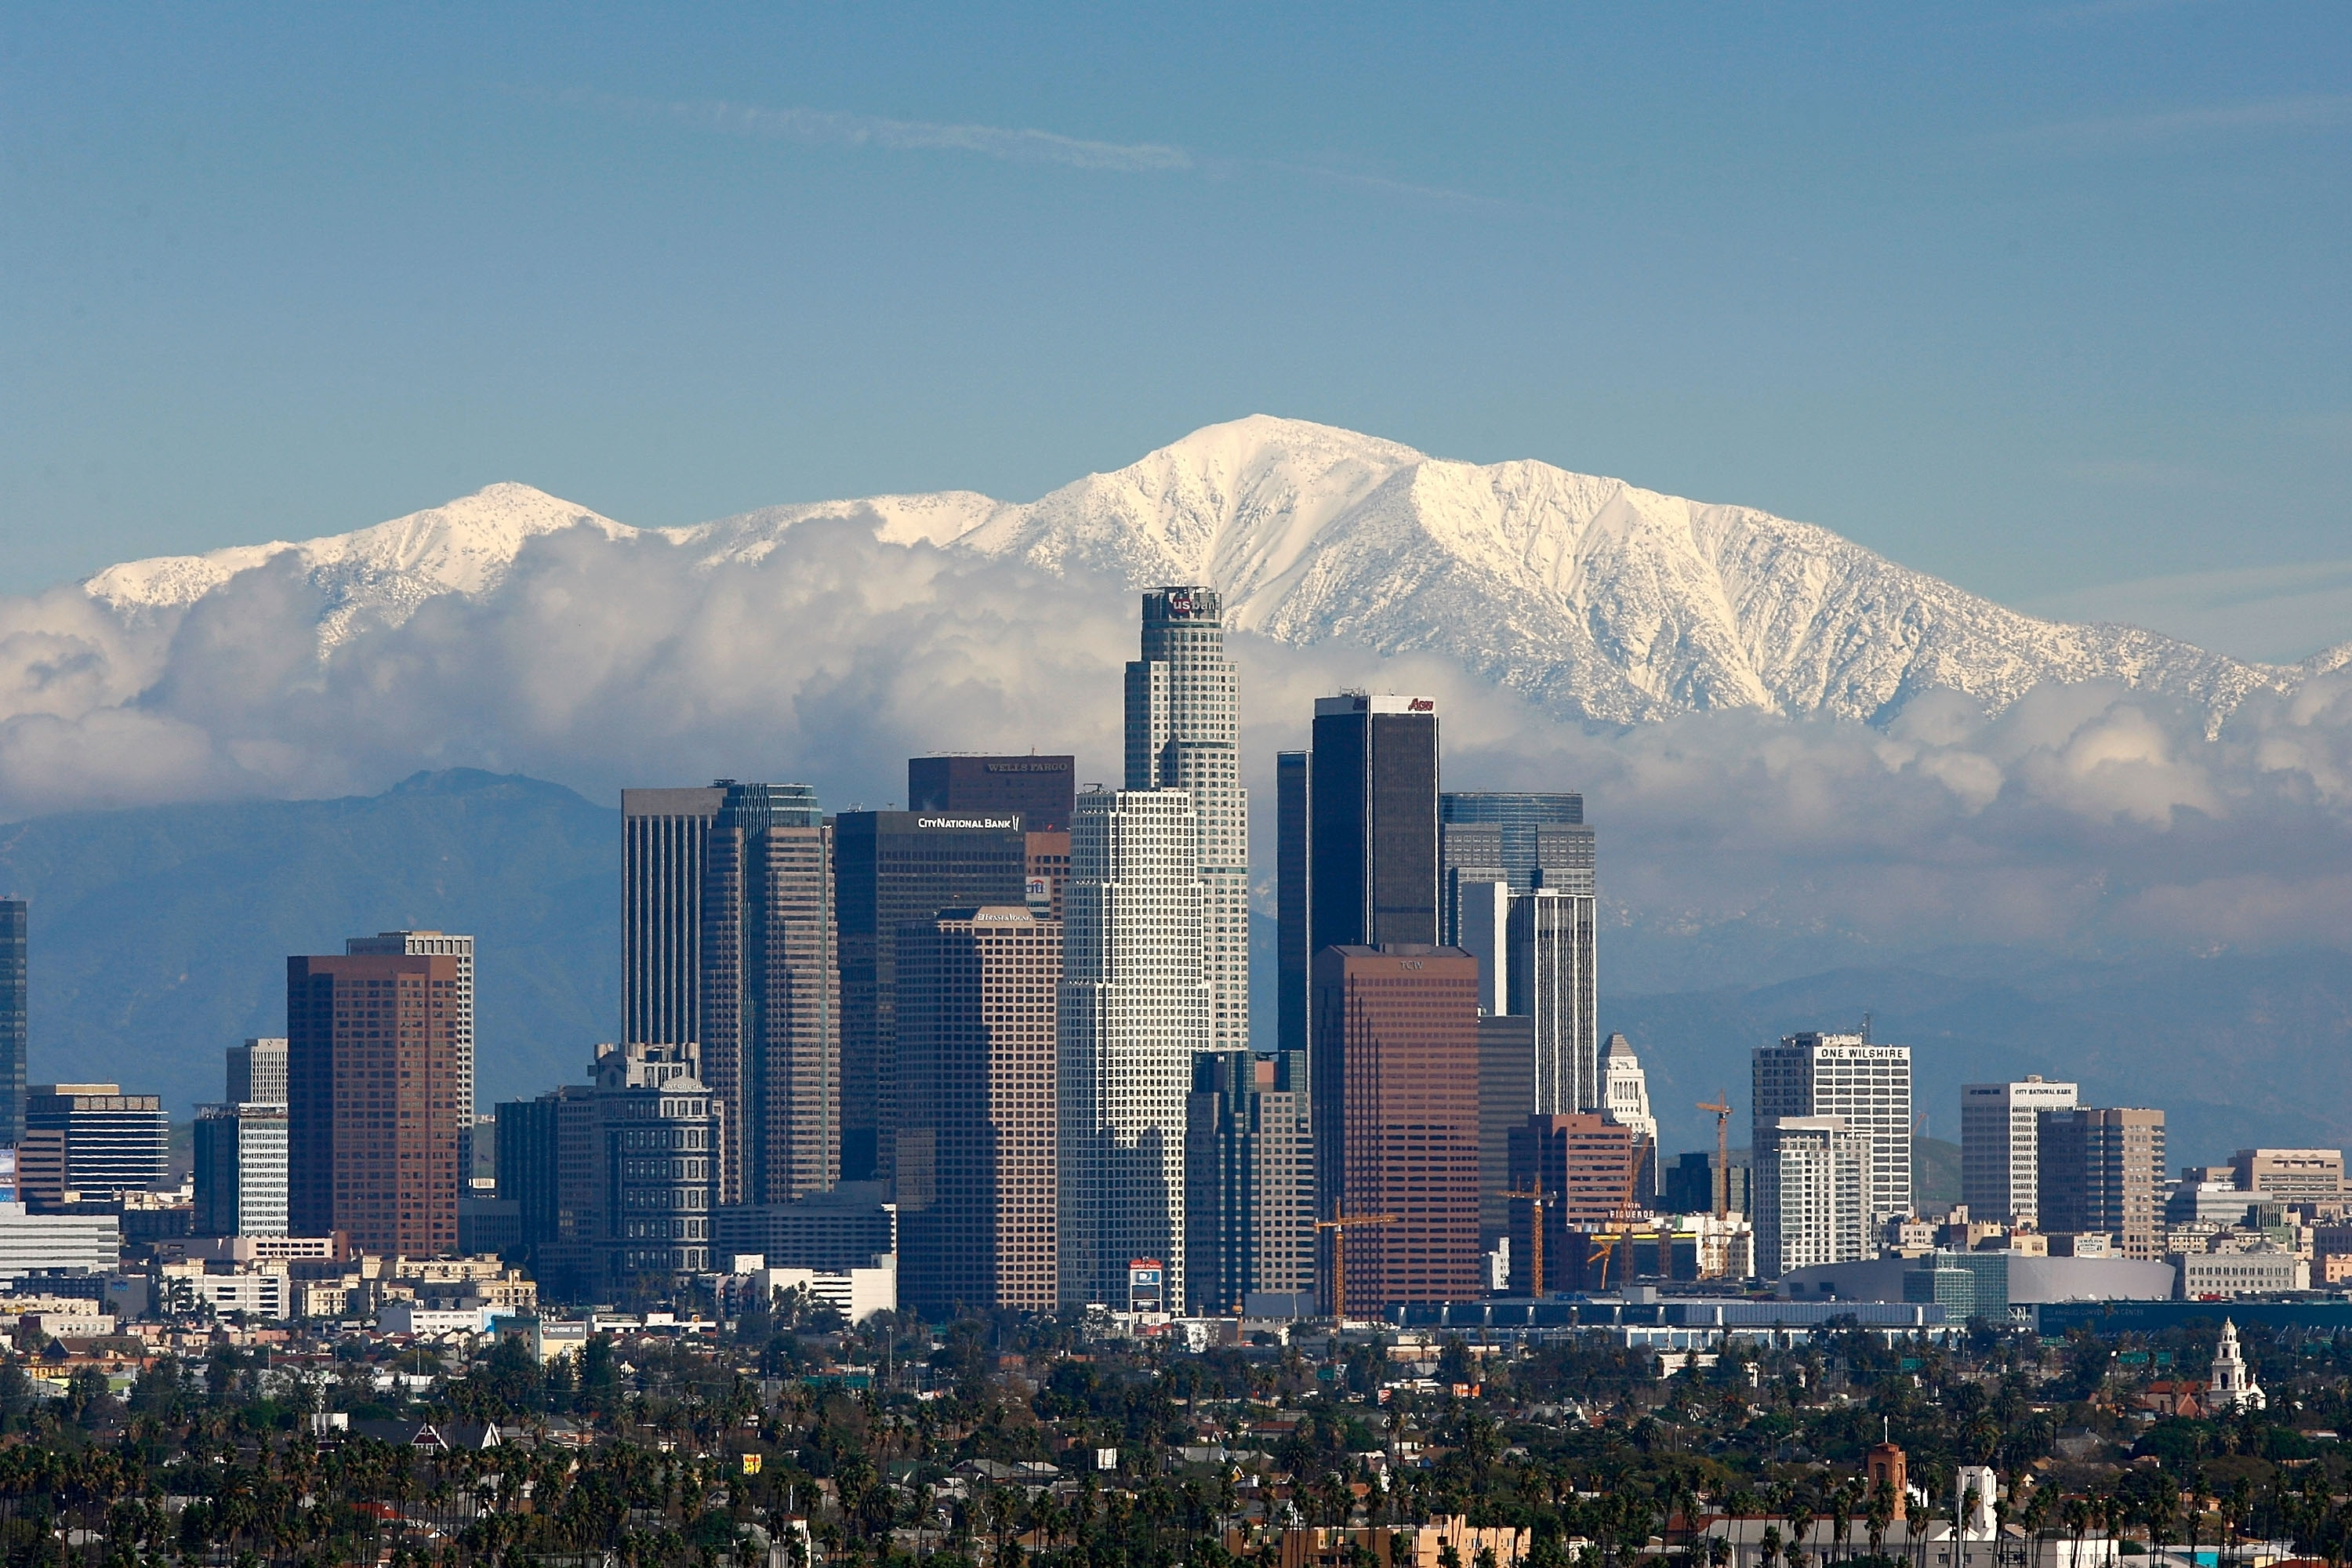 Dtla Zip Code Tops List Of Fastest-Gentrifying Neighborhoods in Zip Downtown Los Angeles